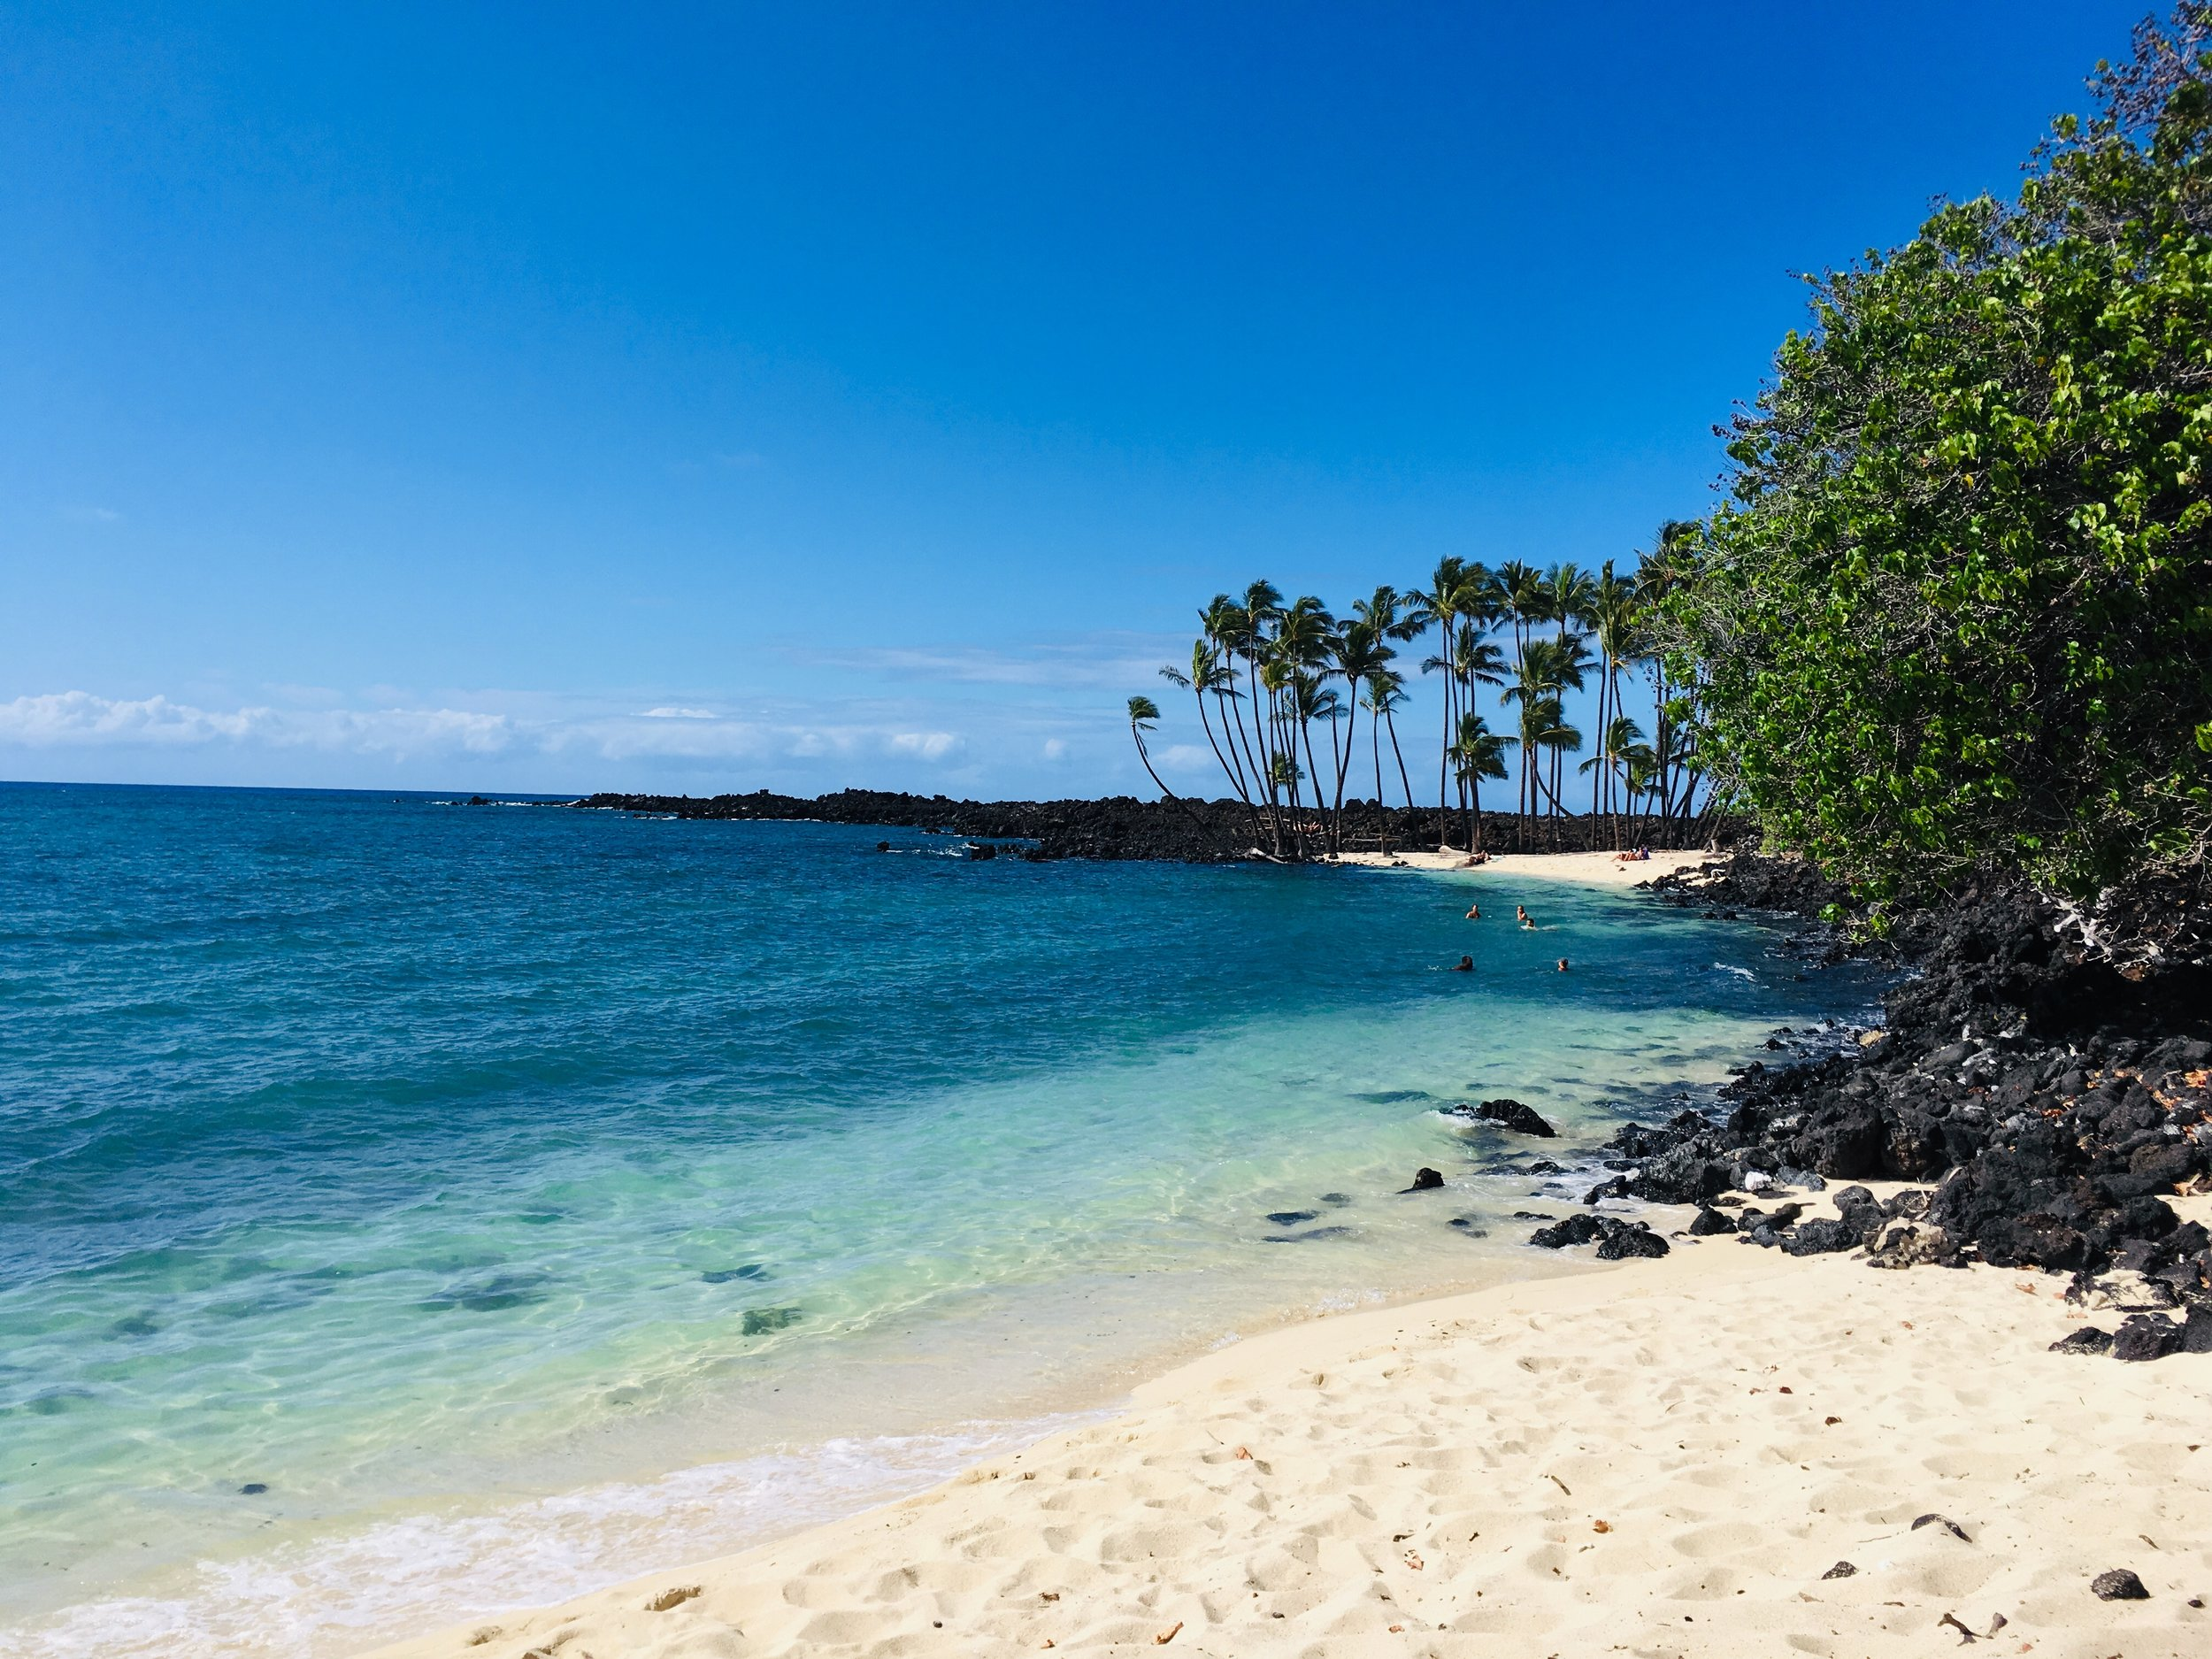 Aloha, Travelers - Visiting the Big Island? We enjoy hosting BJJ practitioners from around the world at our Academy in Beautiful Kailua-Kona, Hawaii.COME ROLL WITH US >>